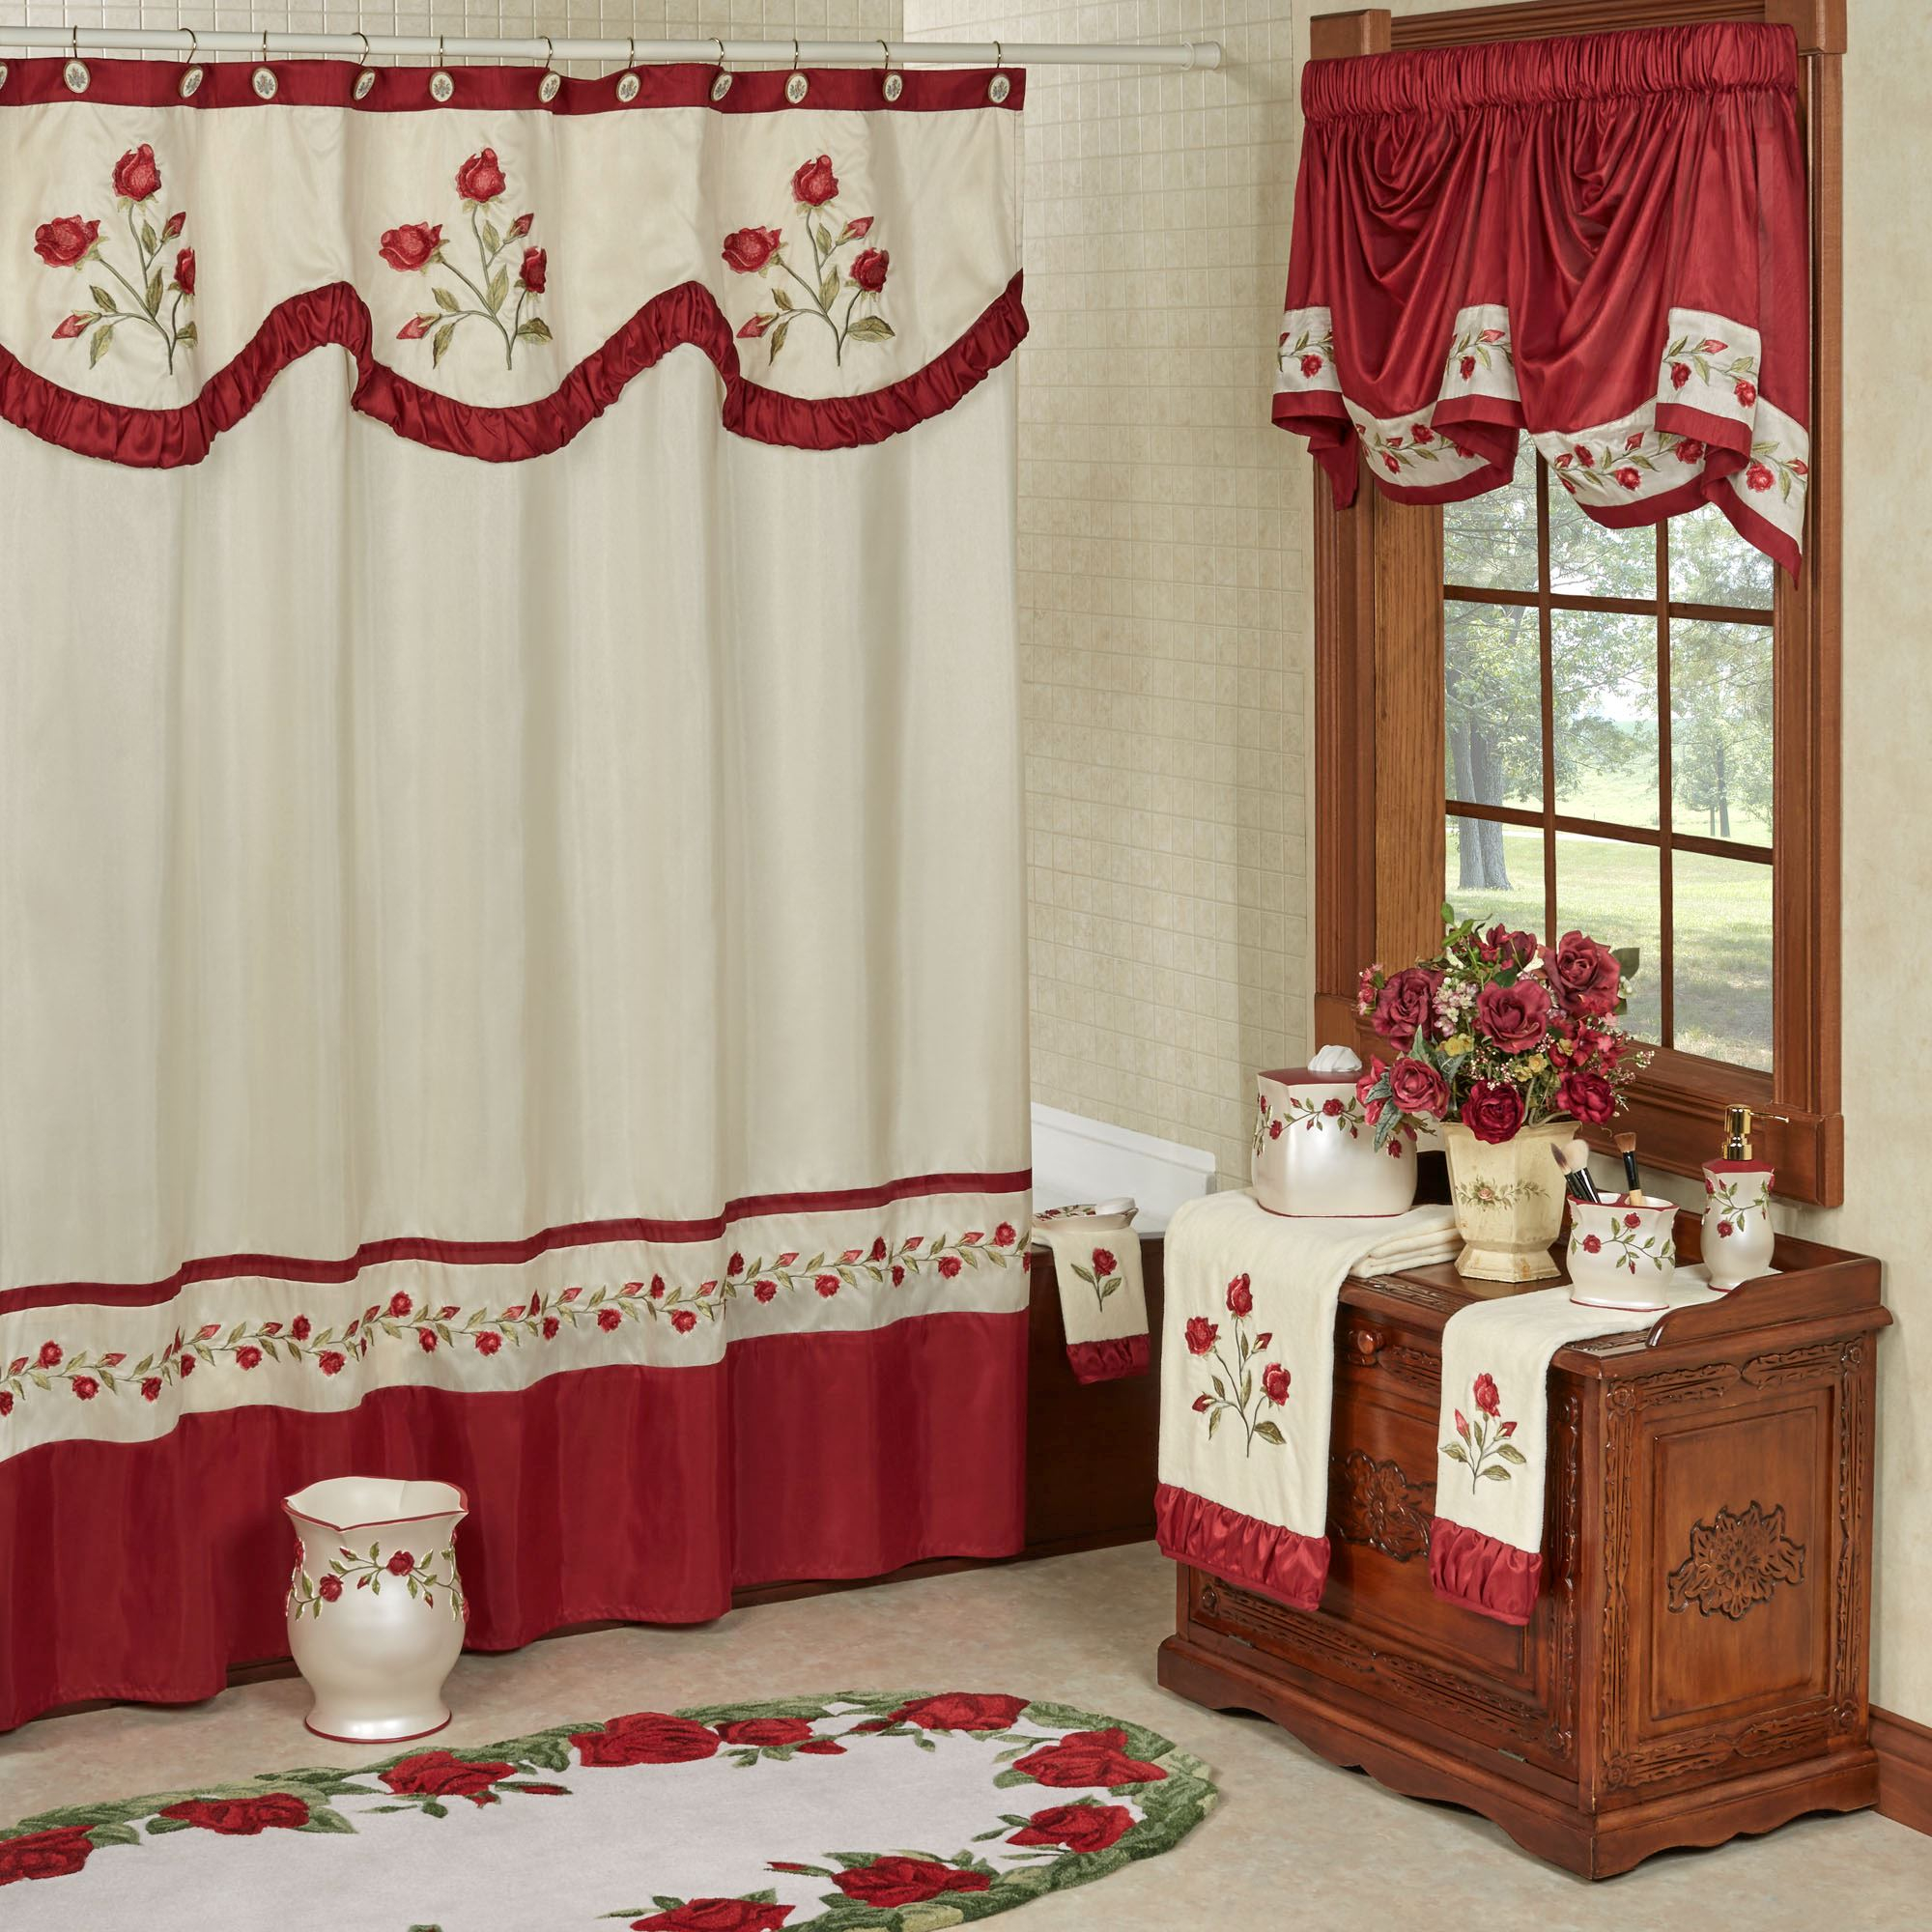 Briar Rose Embroidered Red Floral Shower Curtain pertaining to sizing 2000 X 2000